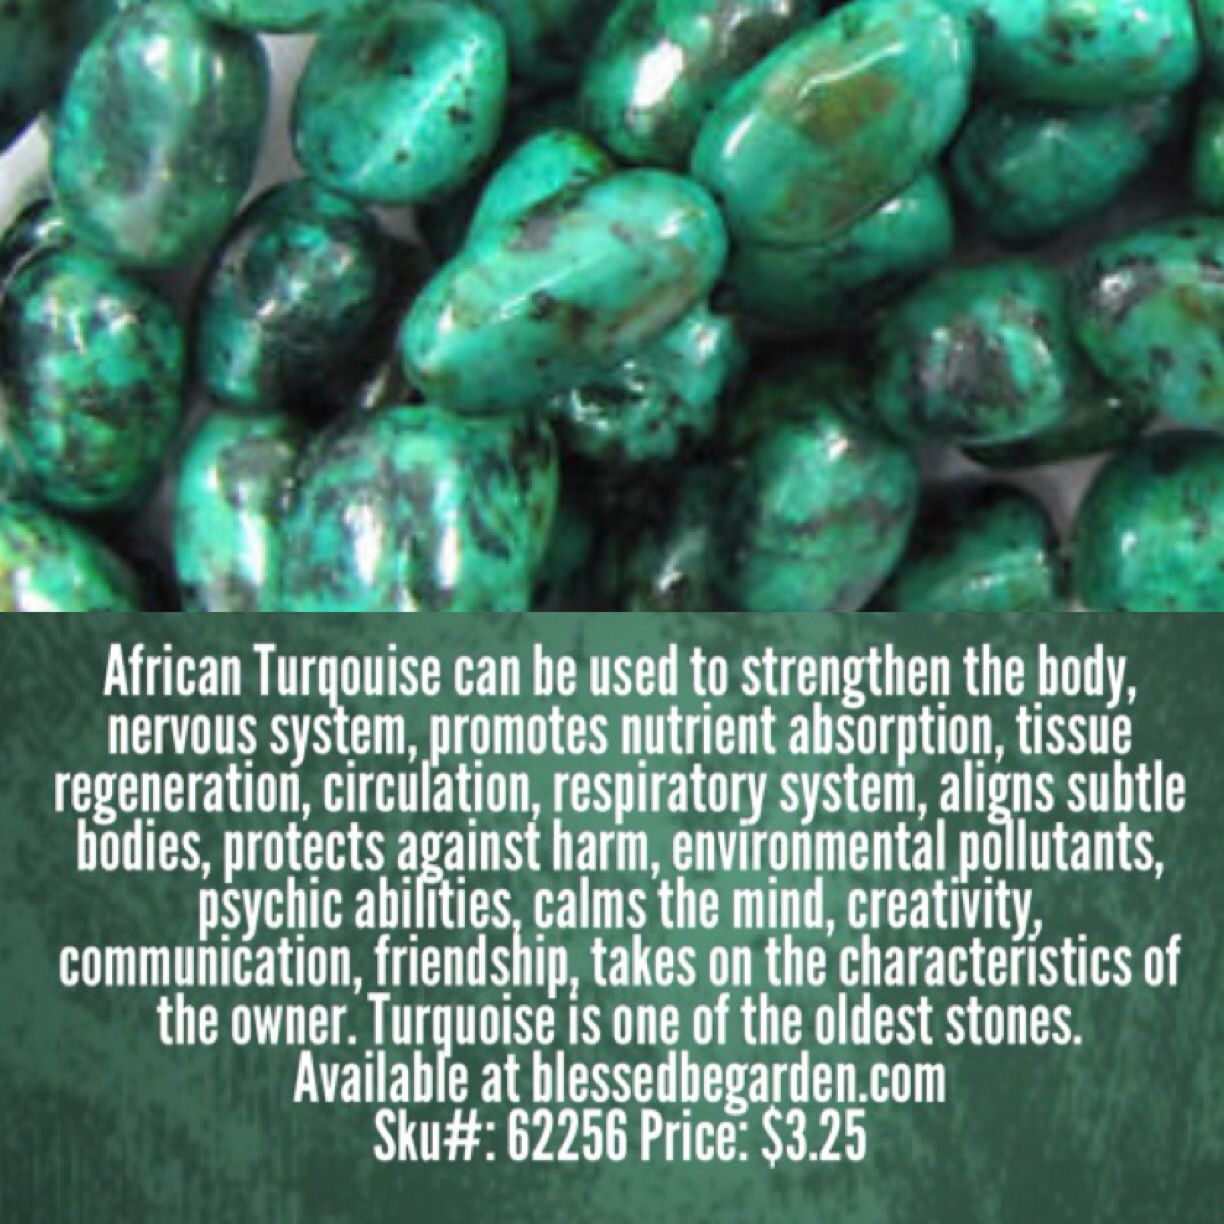 Stone of today is African Turquoise. Available at http